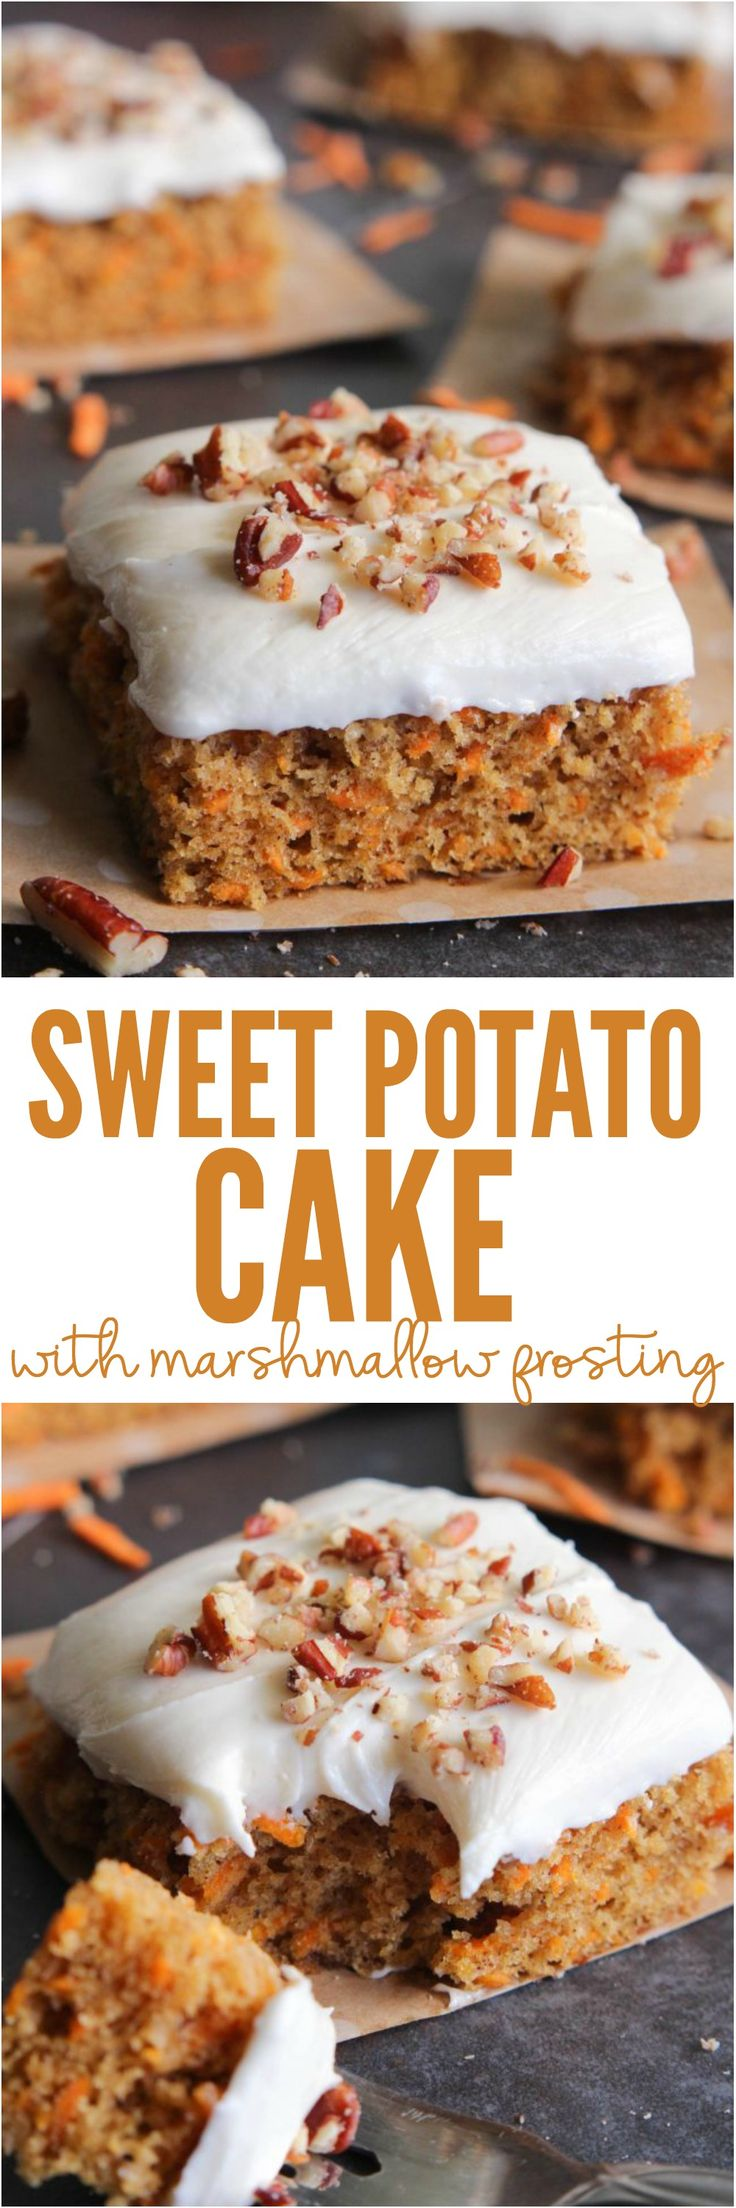 Sweet Potato Cake with Marshmallow Frosting | the Recipe Critic | this is a lightly spiced cake that is perfectly moist and delicious. Topped with the most amazing thick and creamy marshmallow frosting!